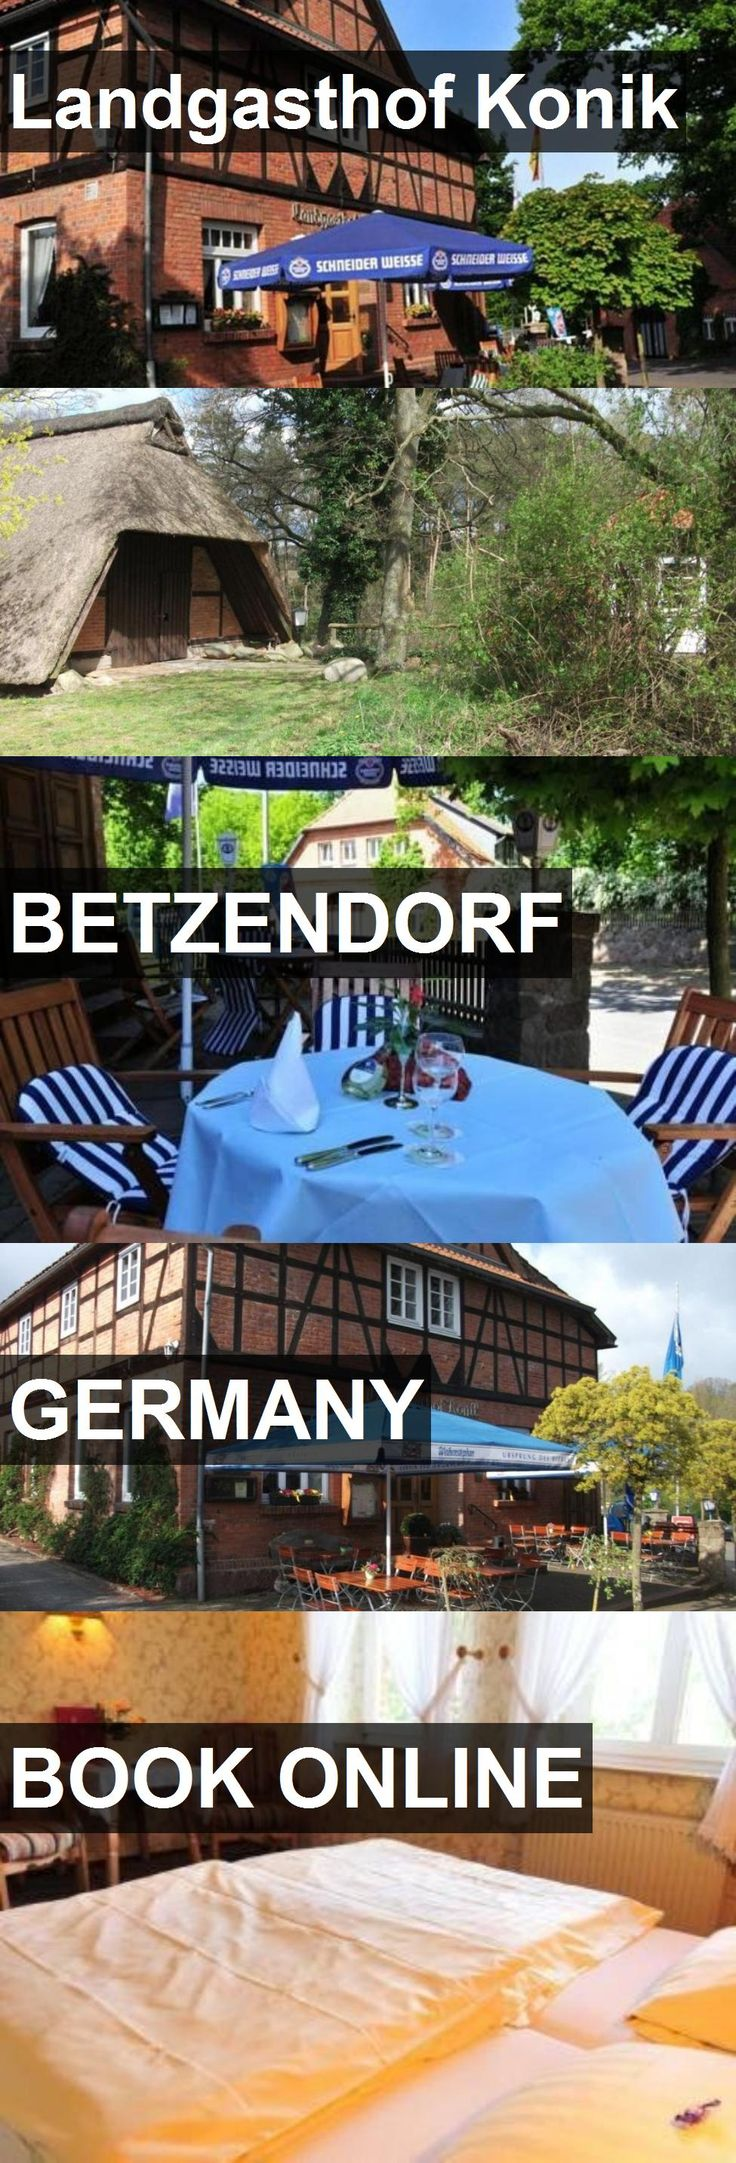 Hotel Landgasthof Konik in Betzendorf, Germany. For more information, photos, reviews and best prices please follow the link. #Germany #Betzendorf #travel #vacation #hotel